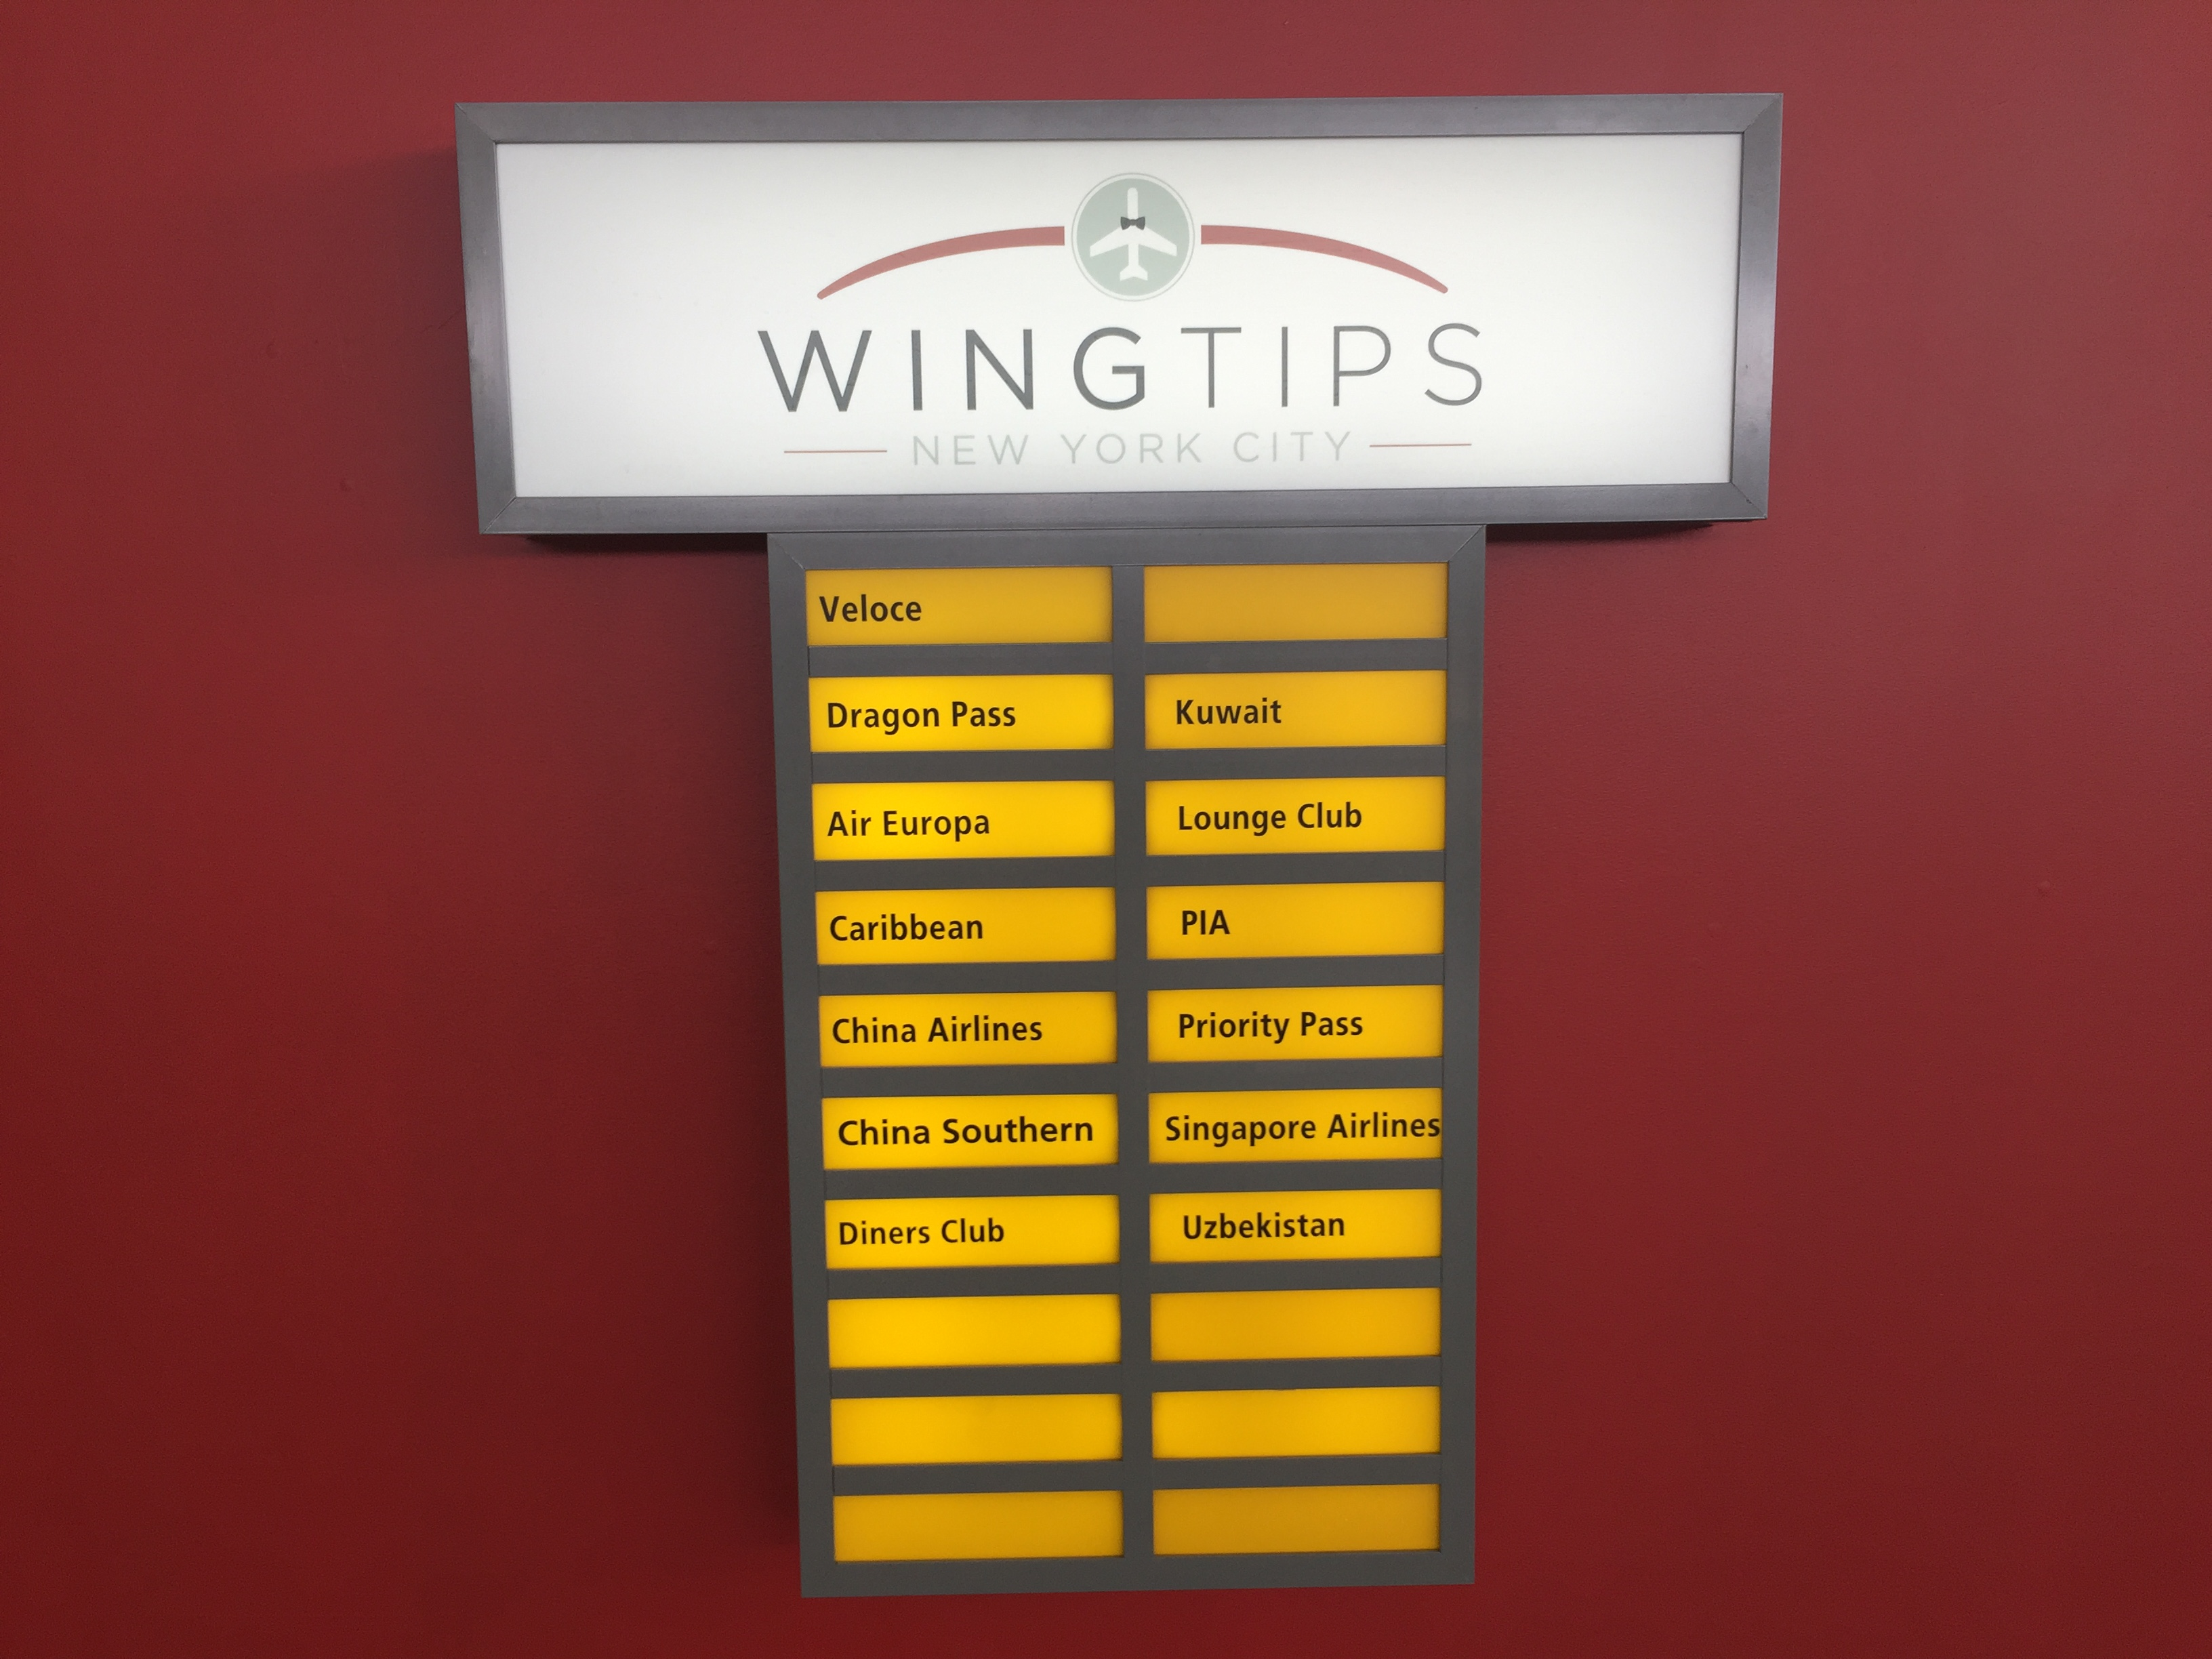 Wingtips JFK Lounge Airline Partners